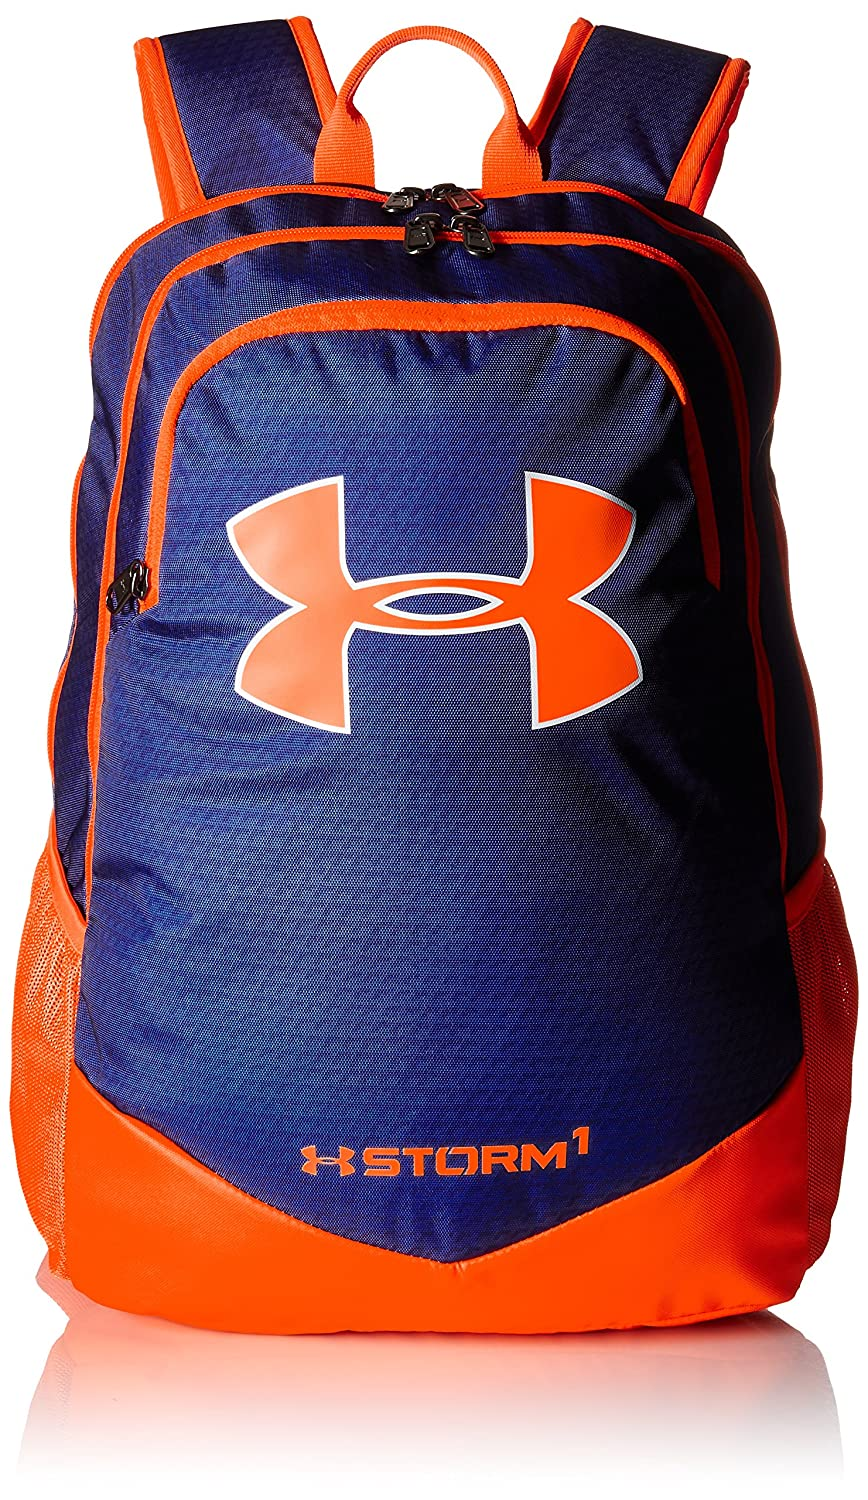 Cross border:- Under Armour Storm Scrimmage Backpack low price